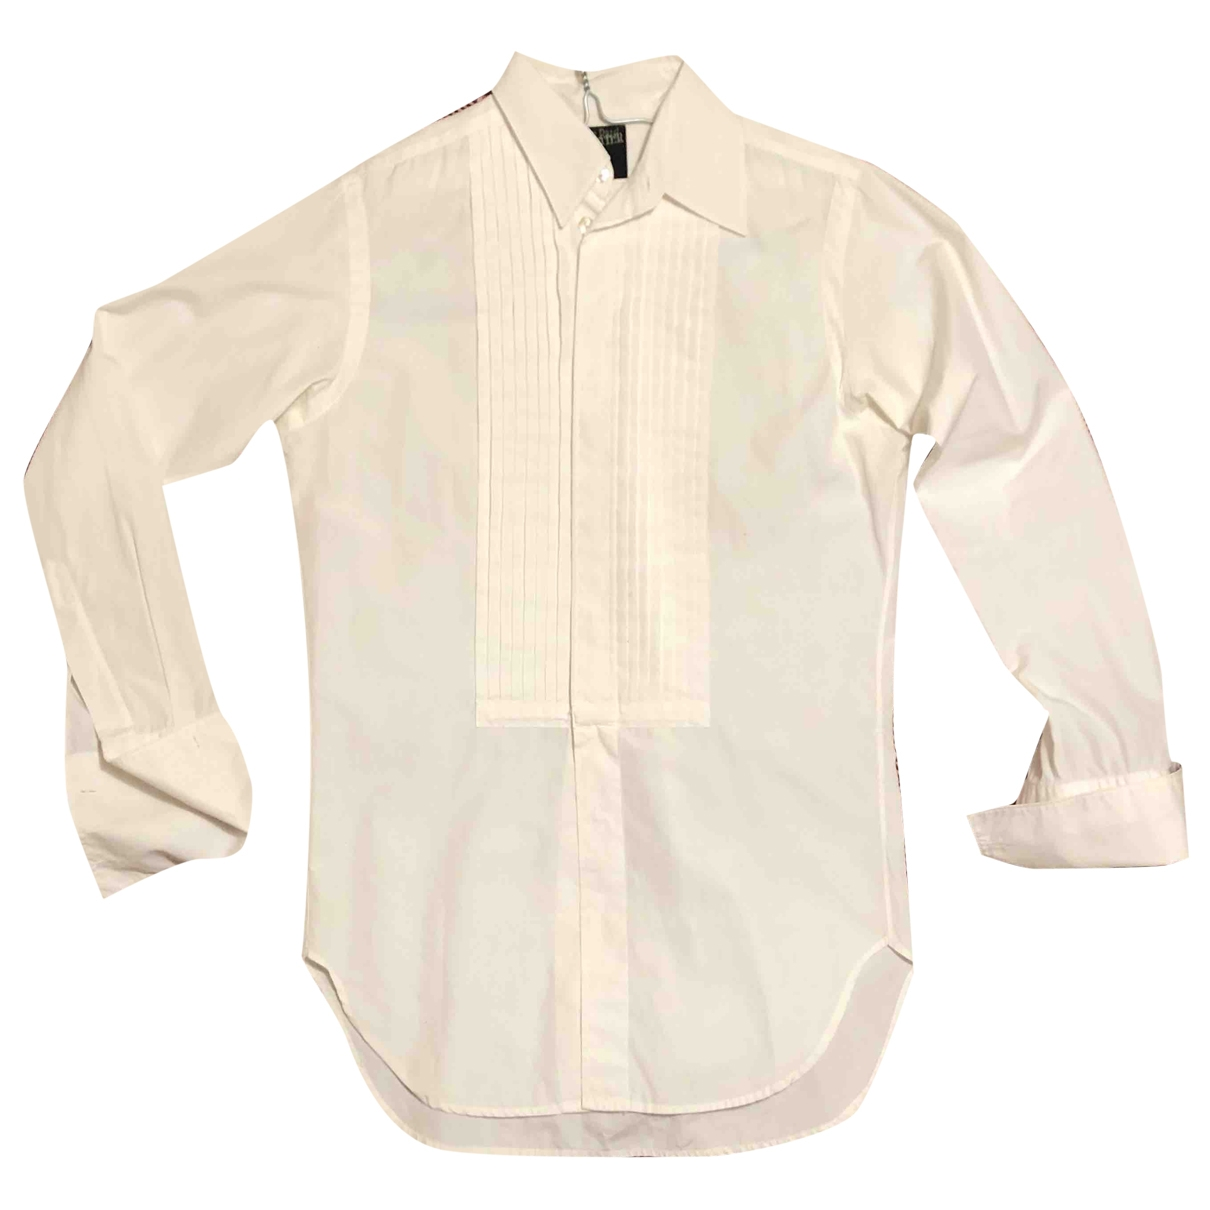 Jean Paul Gaultier \N White Cotton  top for Women 42 IT